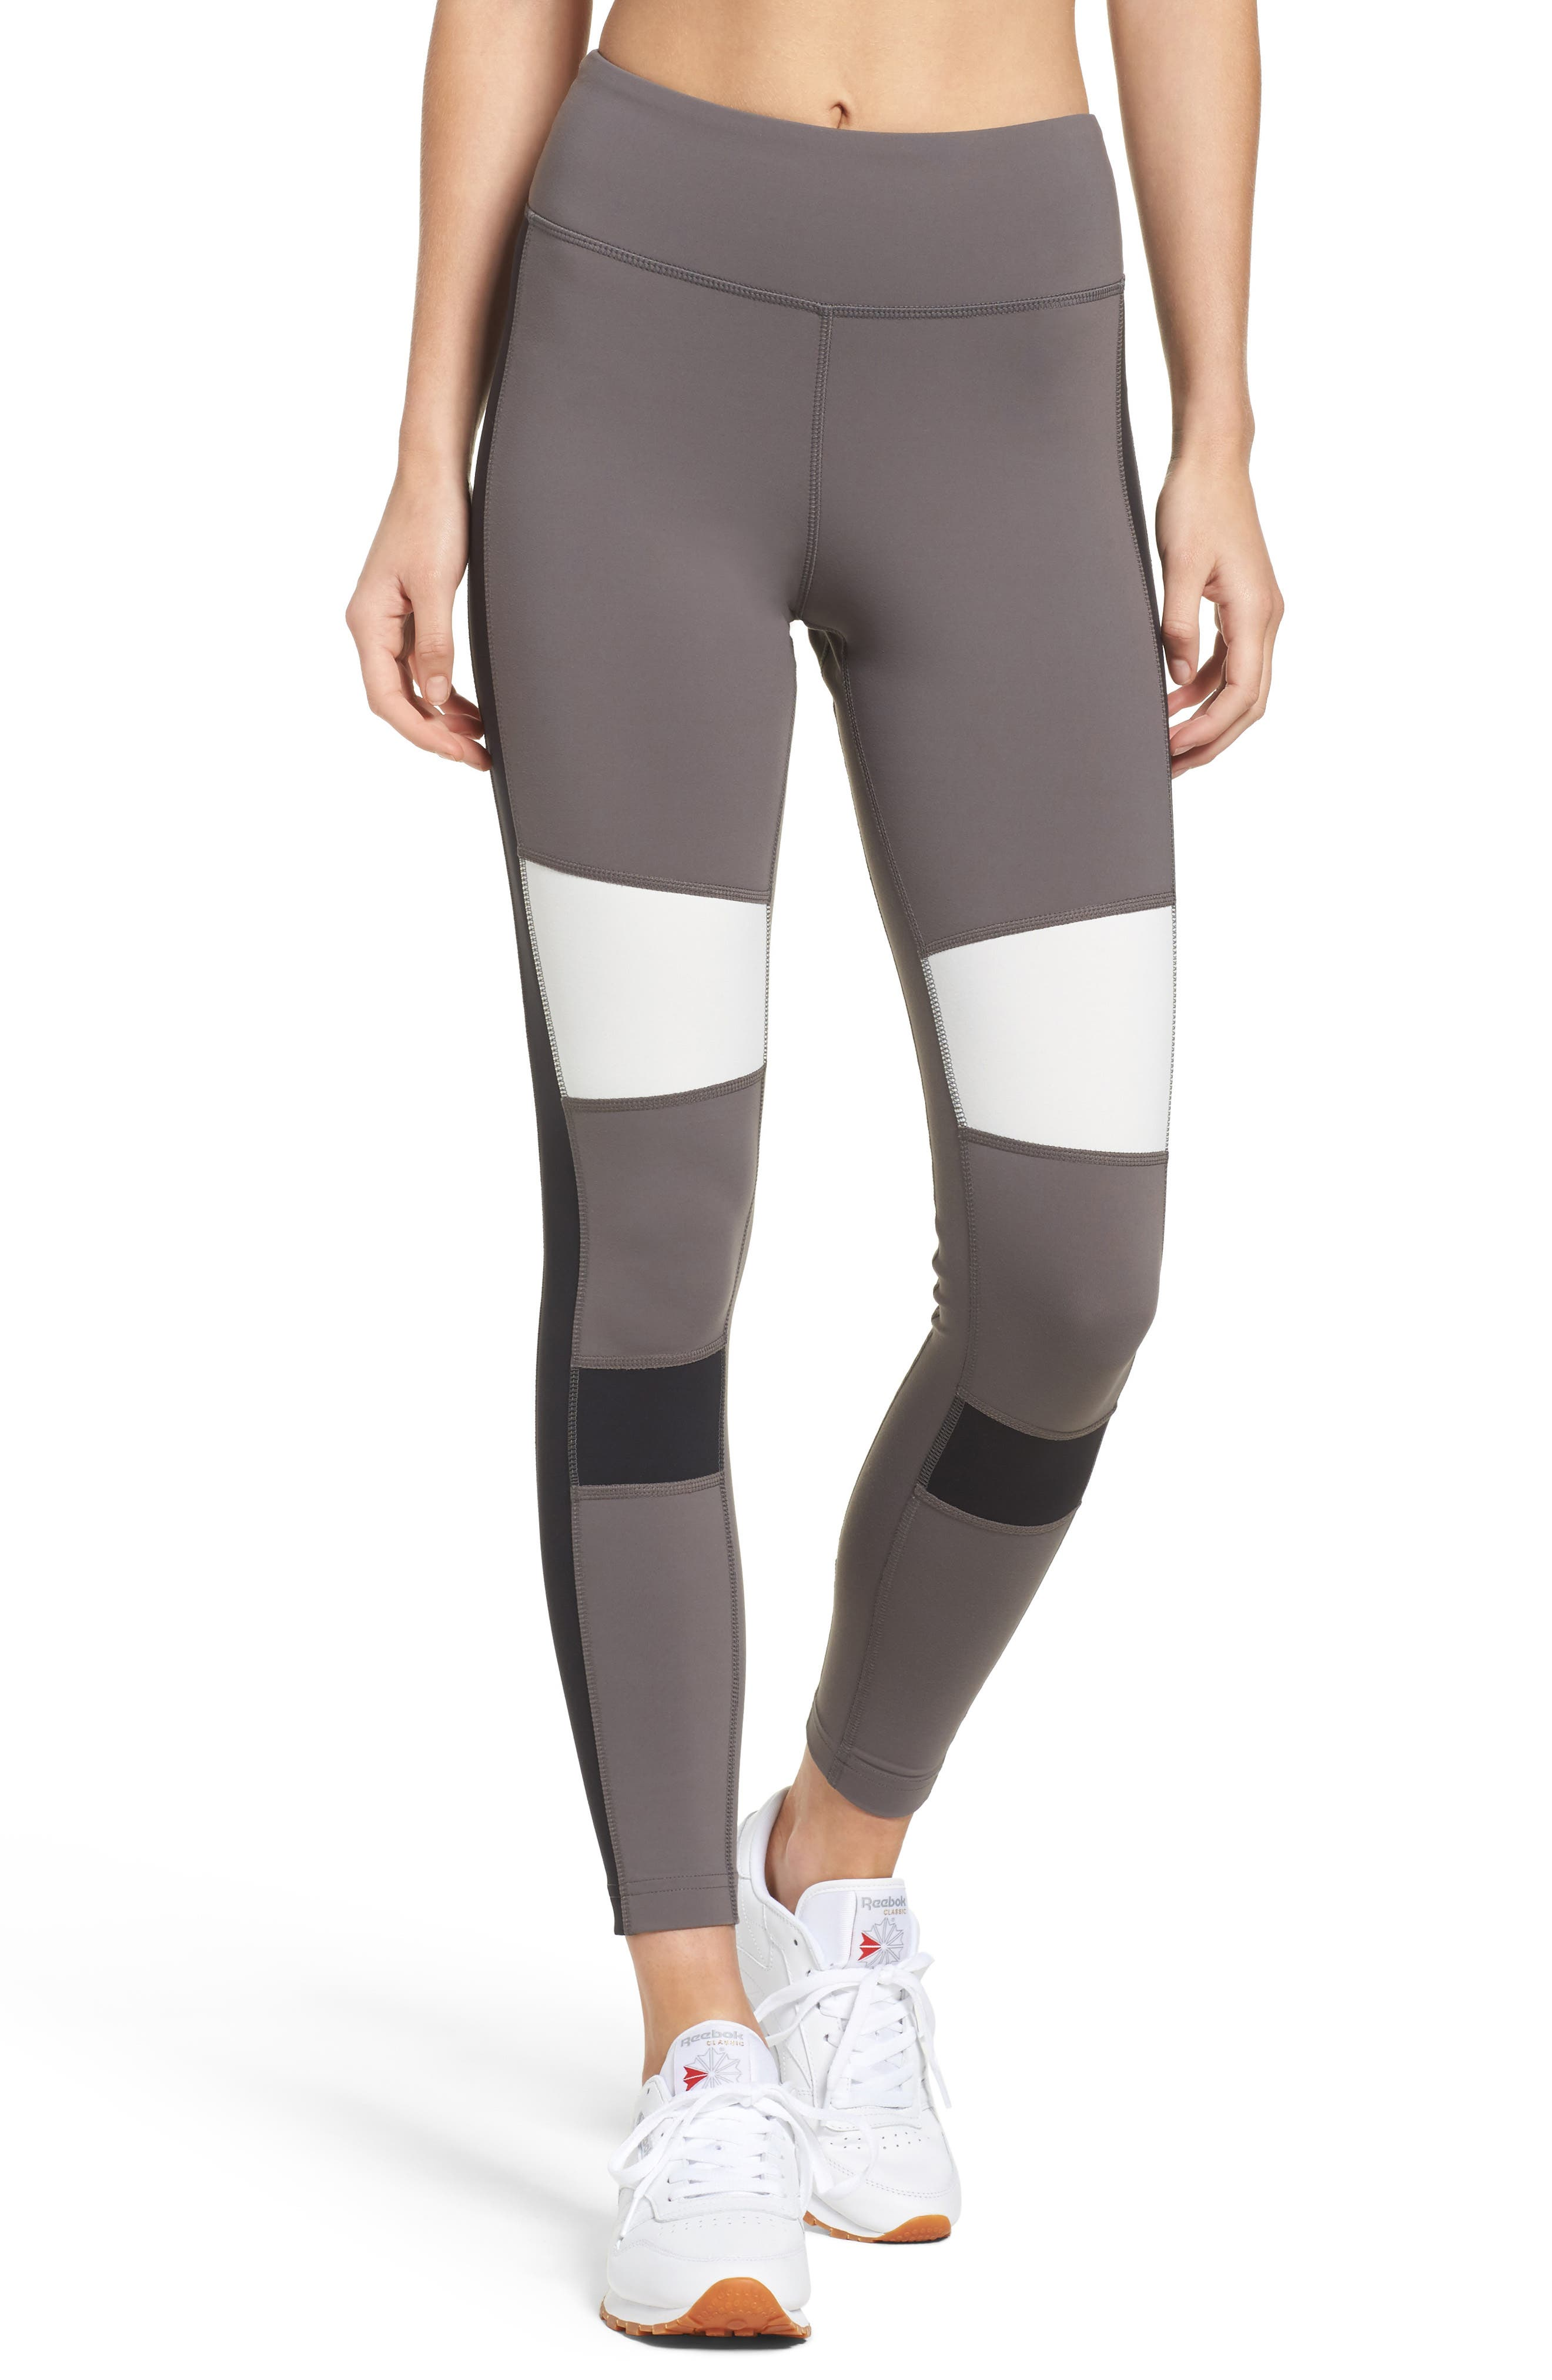 Alternate Image 1 Selected - Reebok Lux Colorblock Tights